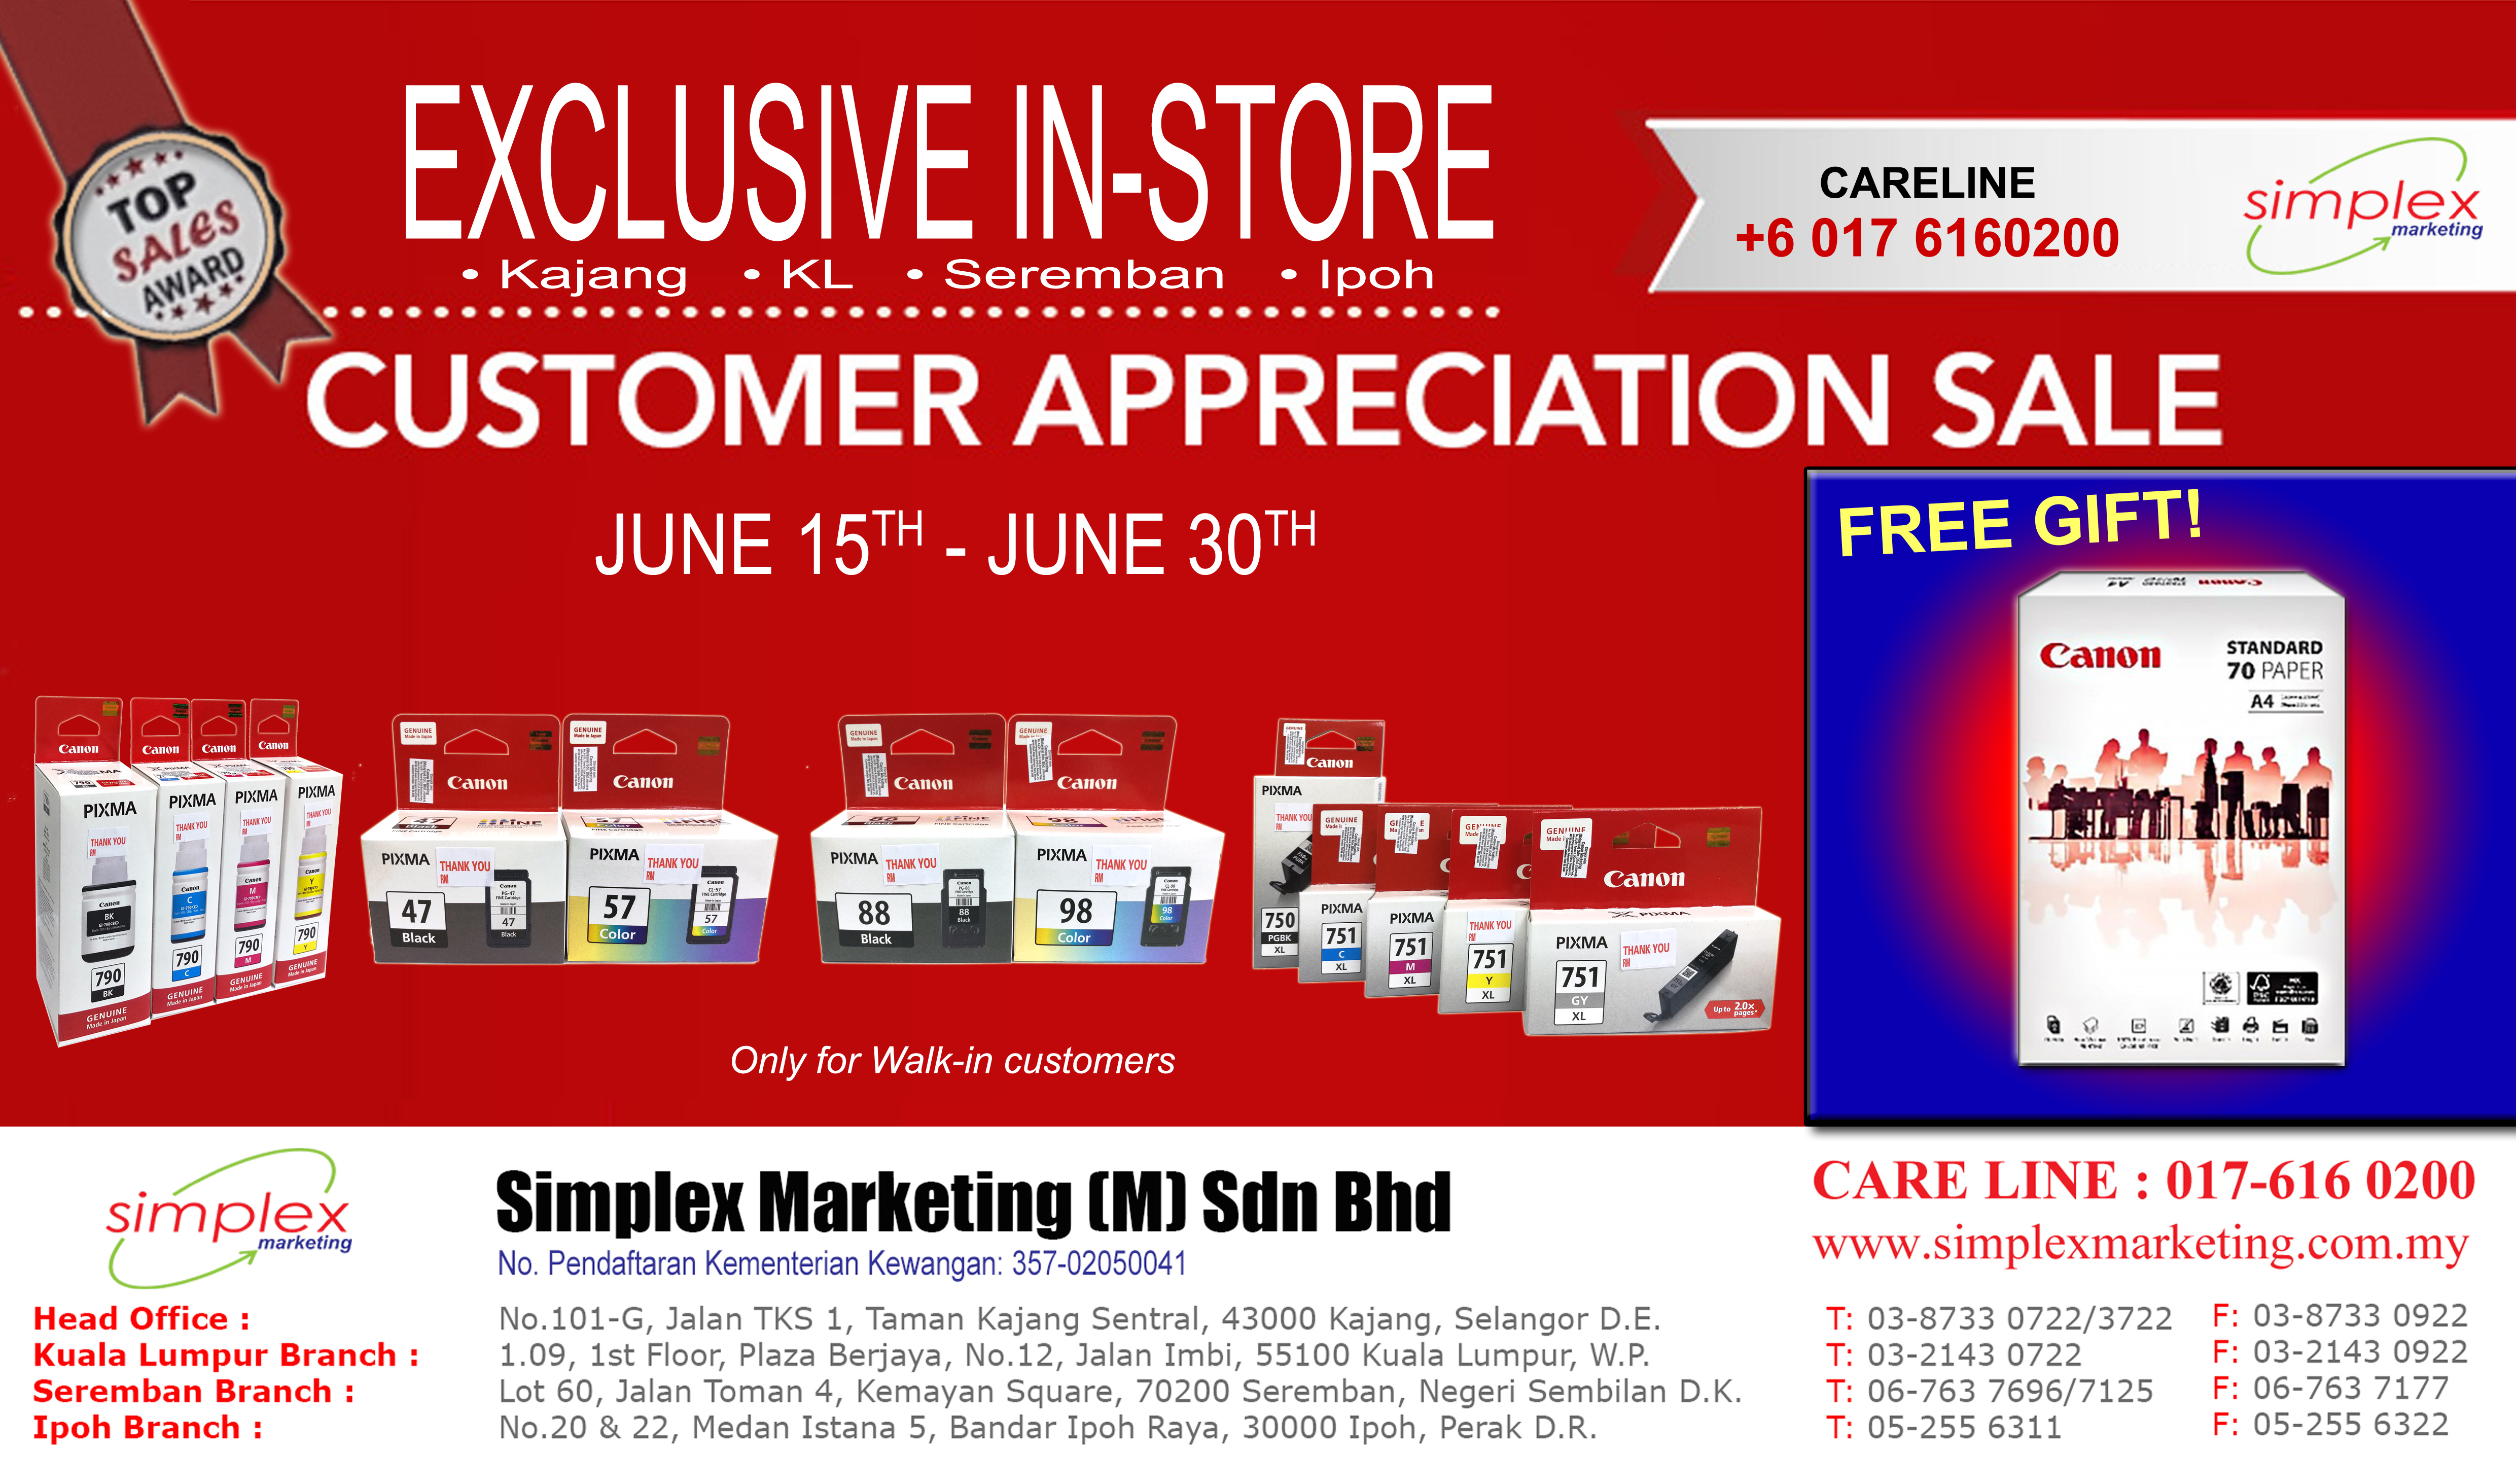 190613 - Buy Ink Free Paper Promo - BANNER A3